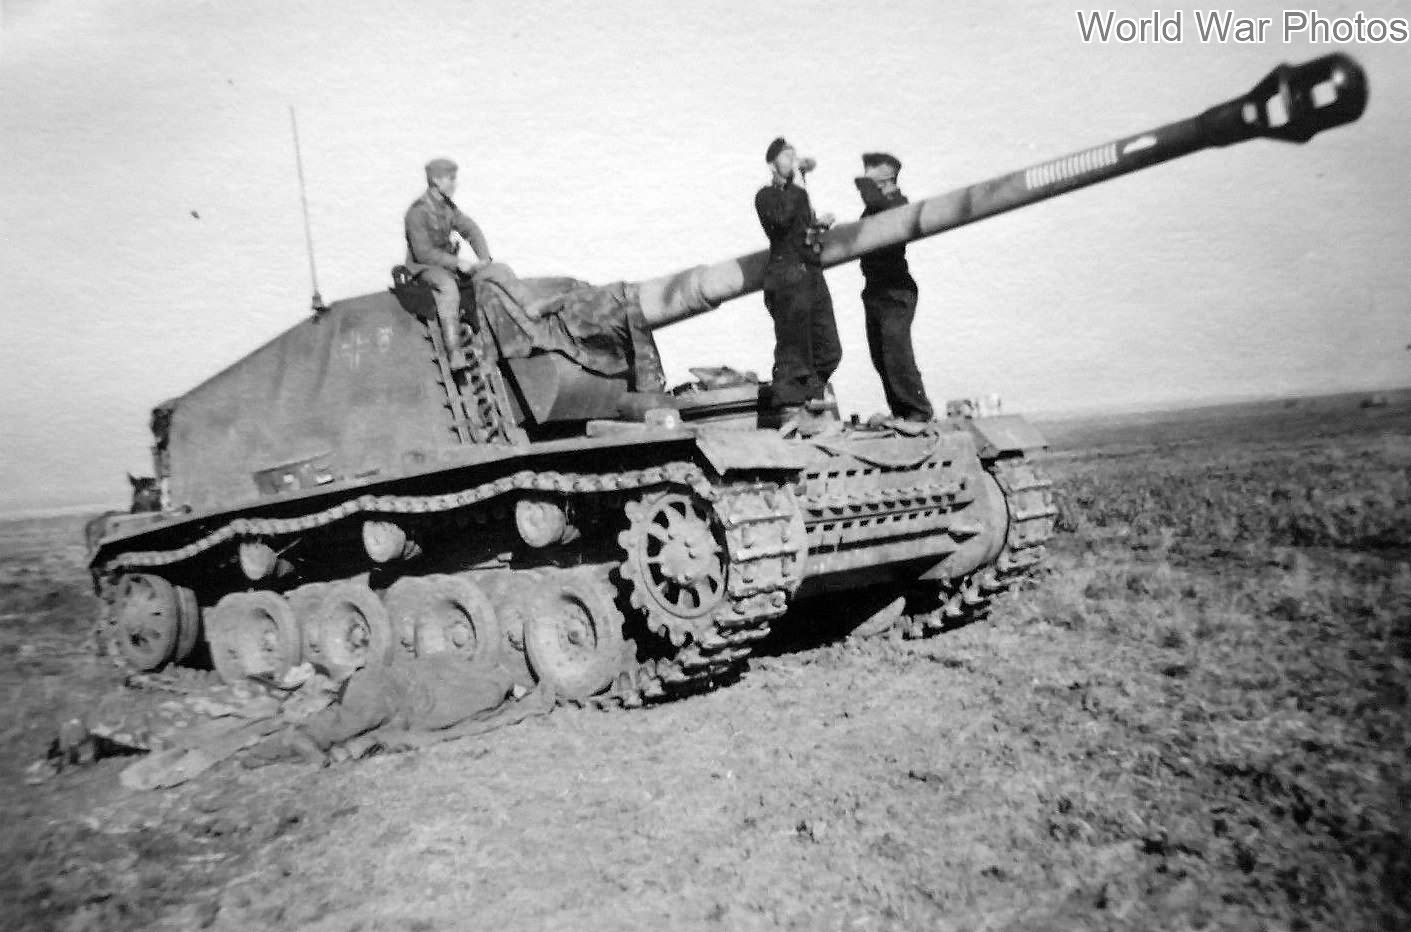 Sturer Emil of the Panzerjaeger-Abteilung (Sfl.) 521